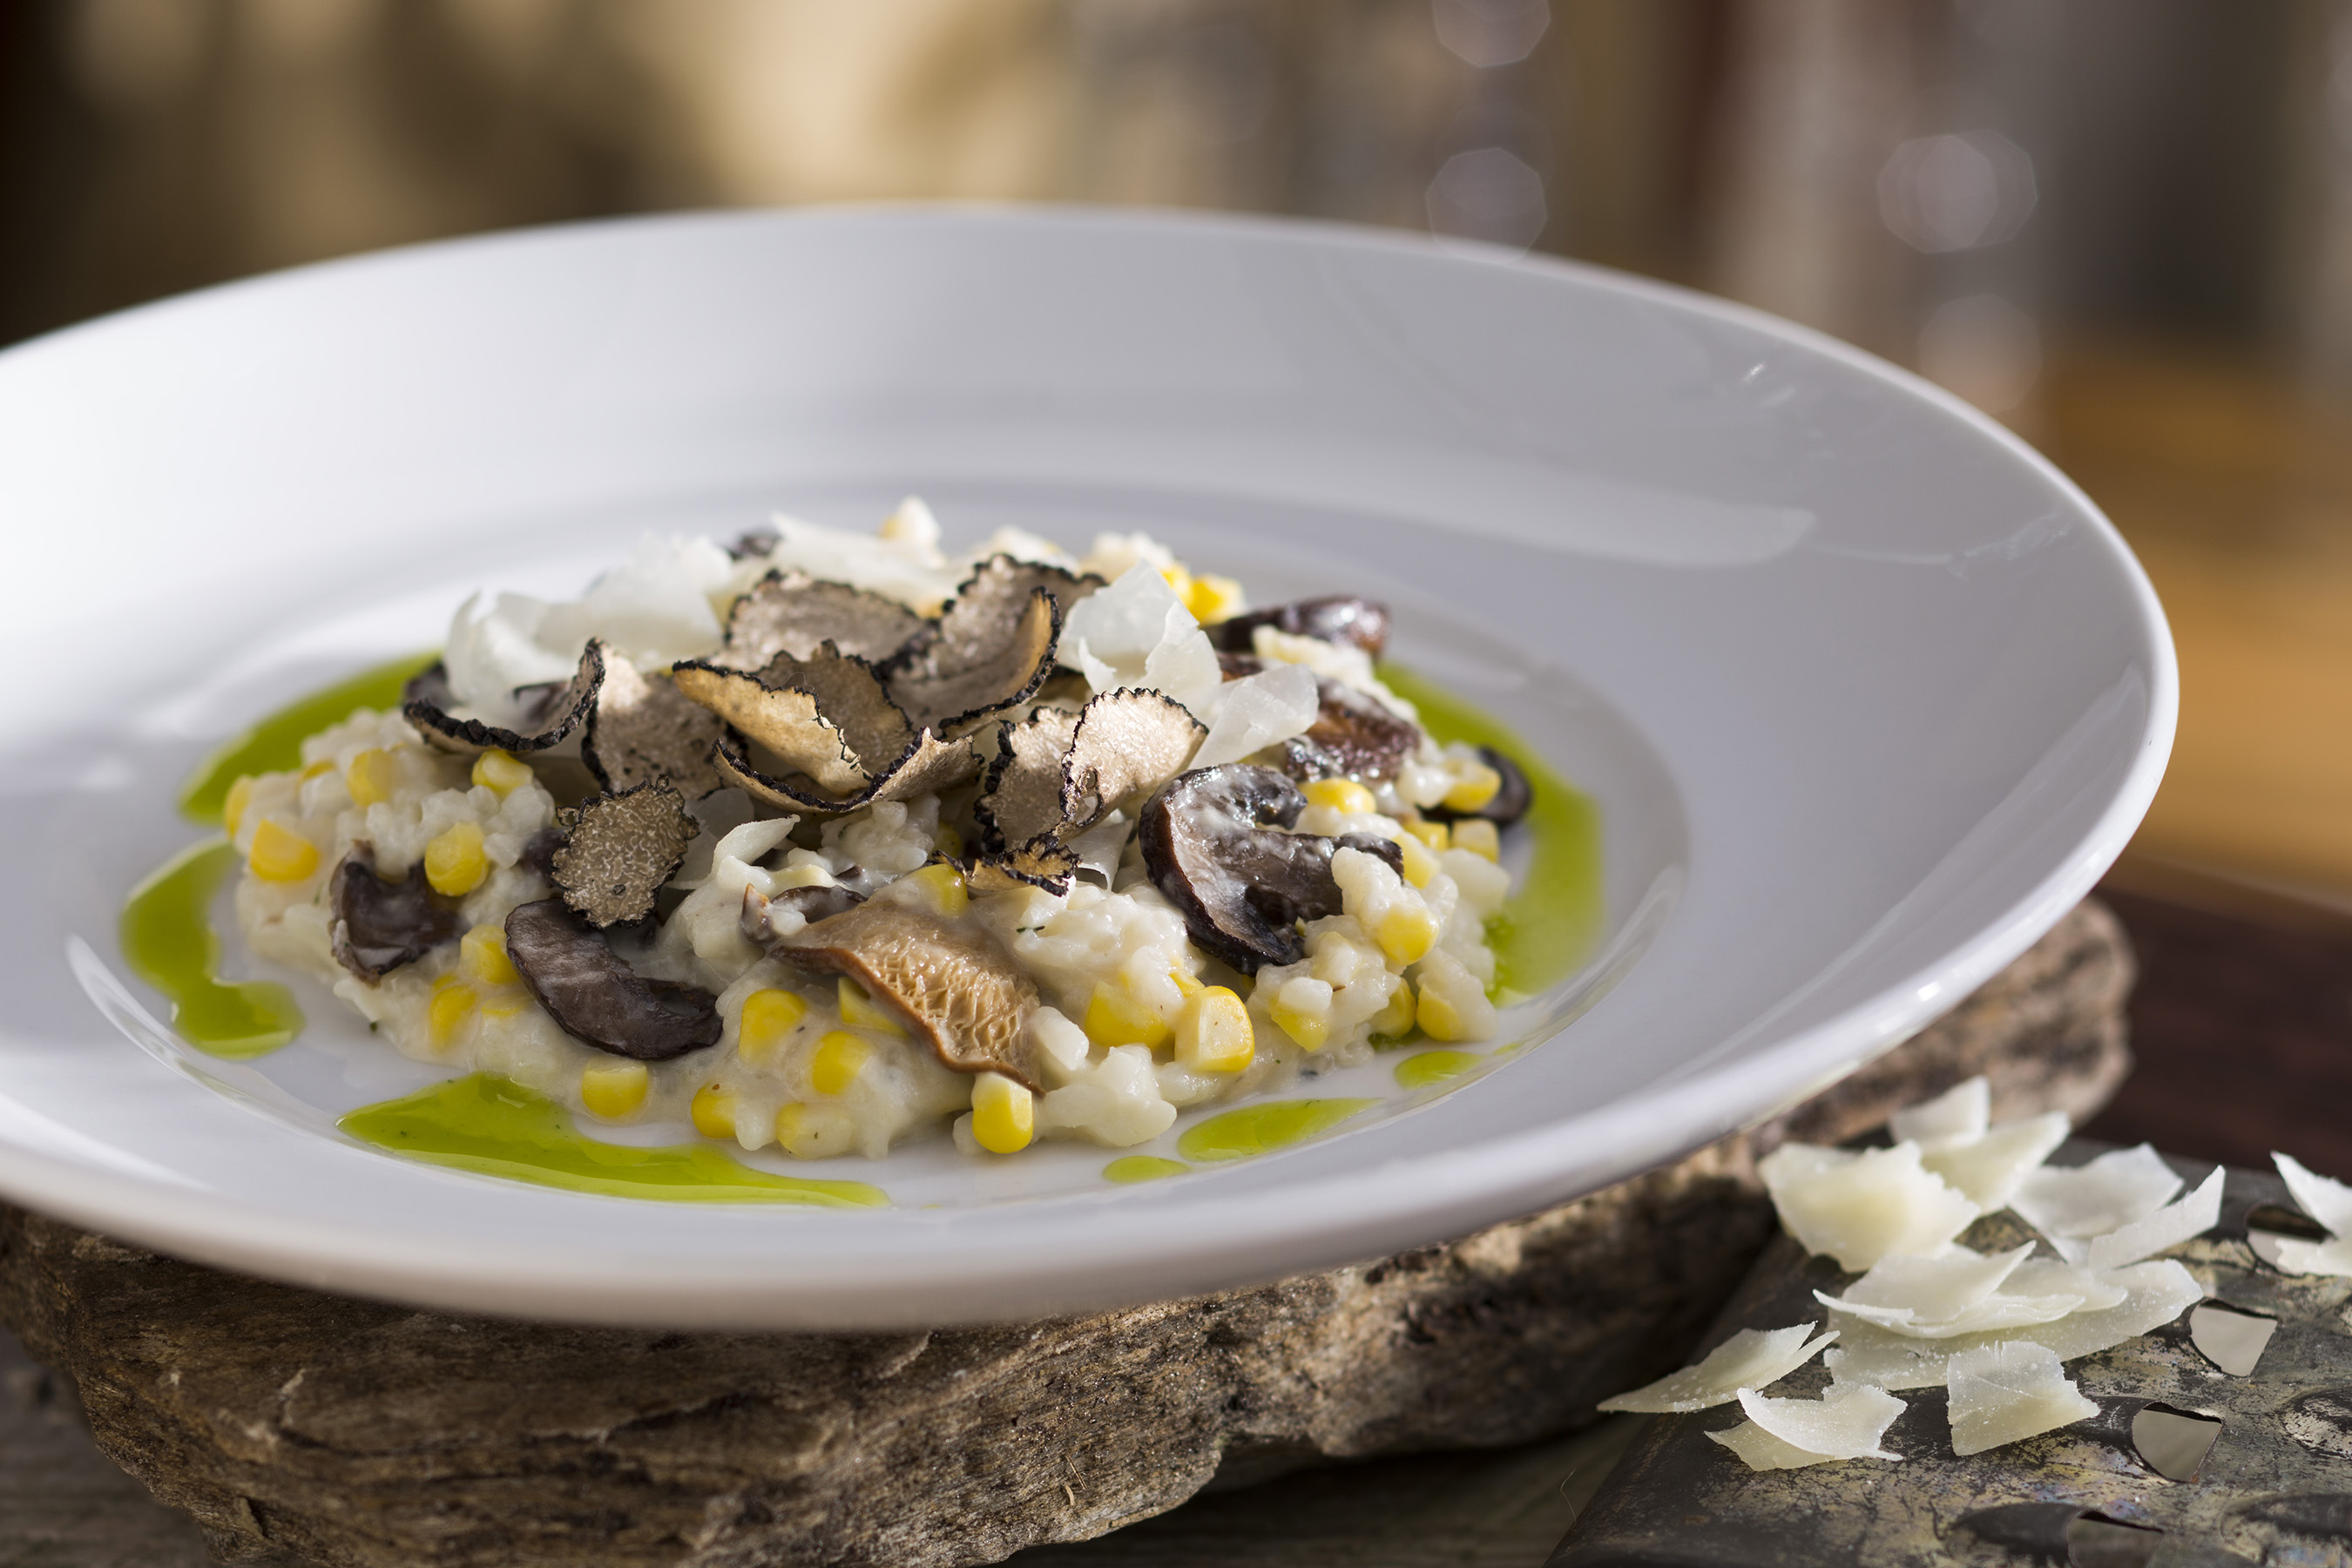 Summer Truffle Risotto: This highly anticipated dish hits the menu late July, featuring flavor-rich Black Truffles, roasted mushrooms & sweet summer corn. Harvested in Italy, the truffles are flown in & hand shaved to order.